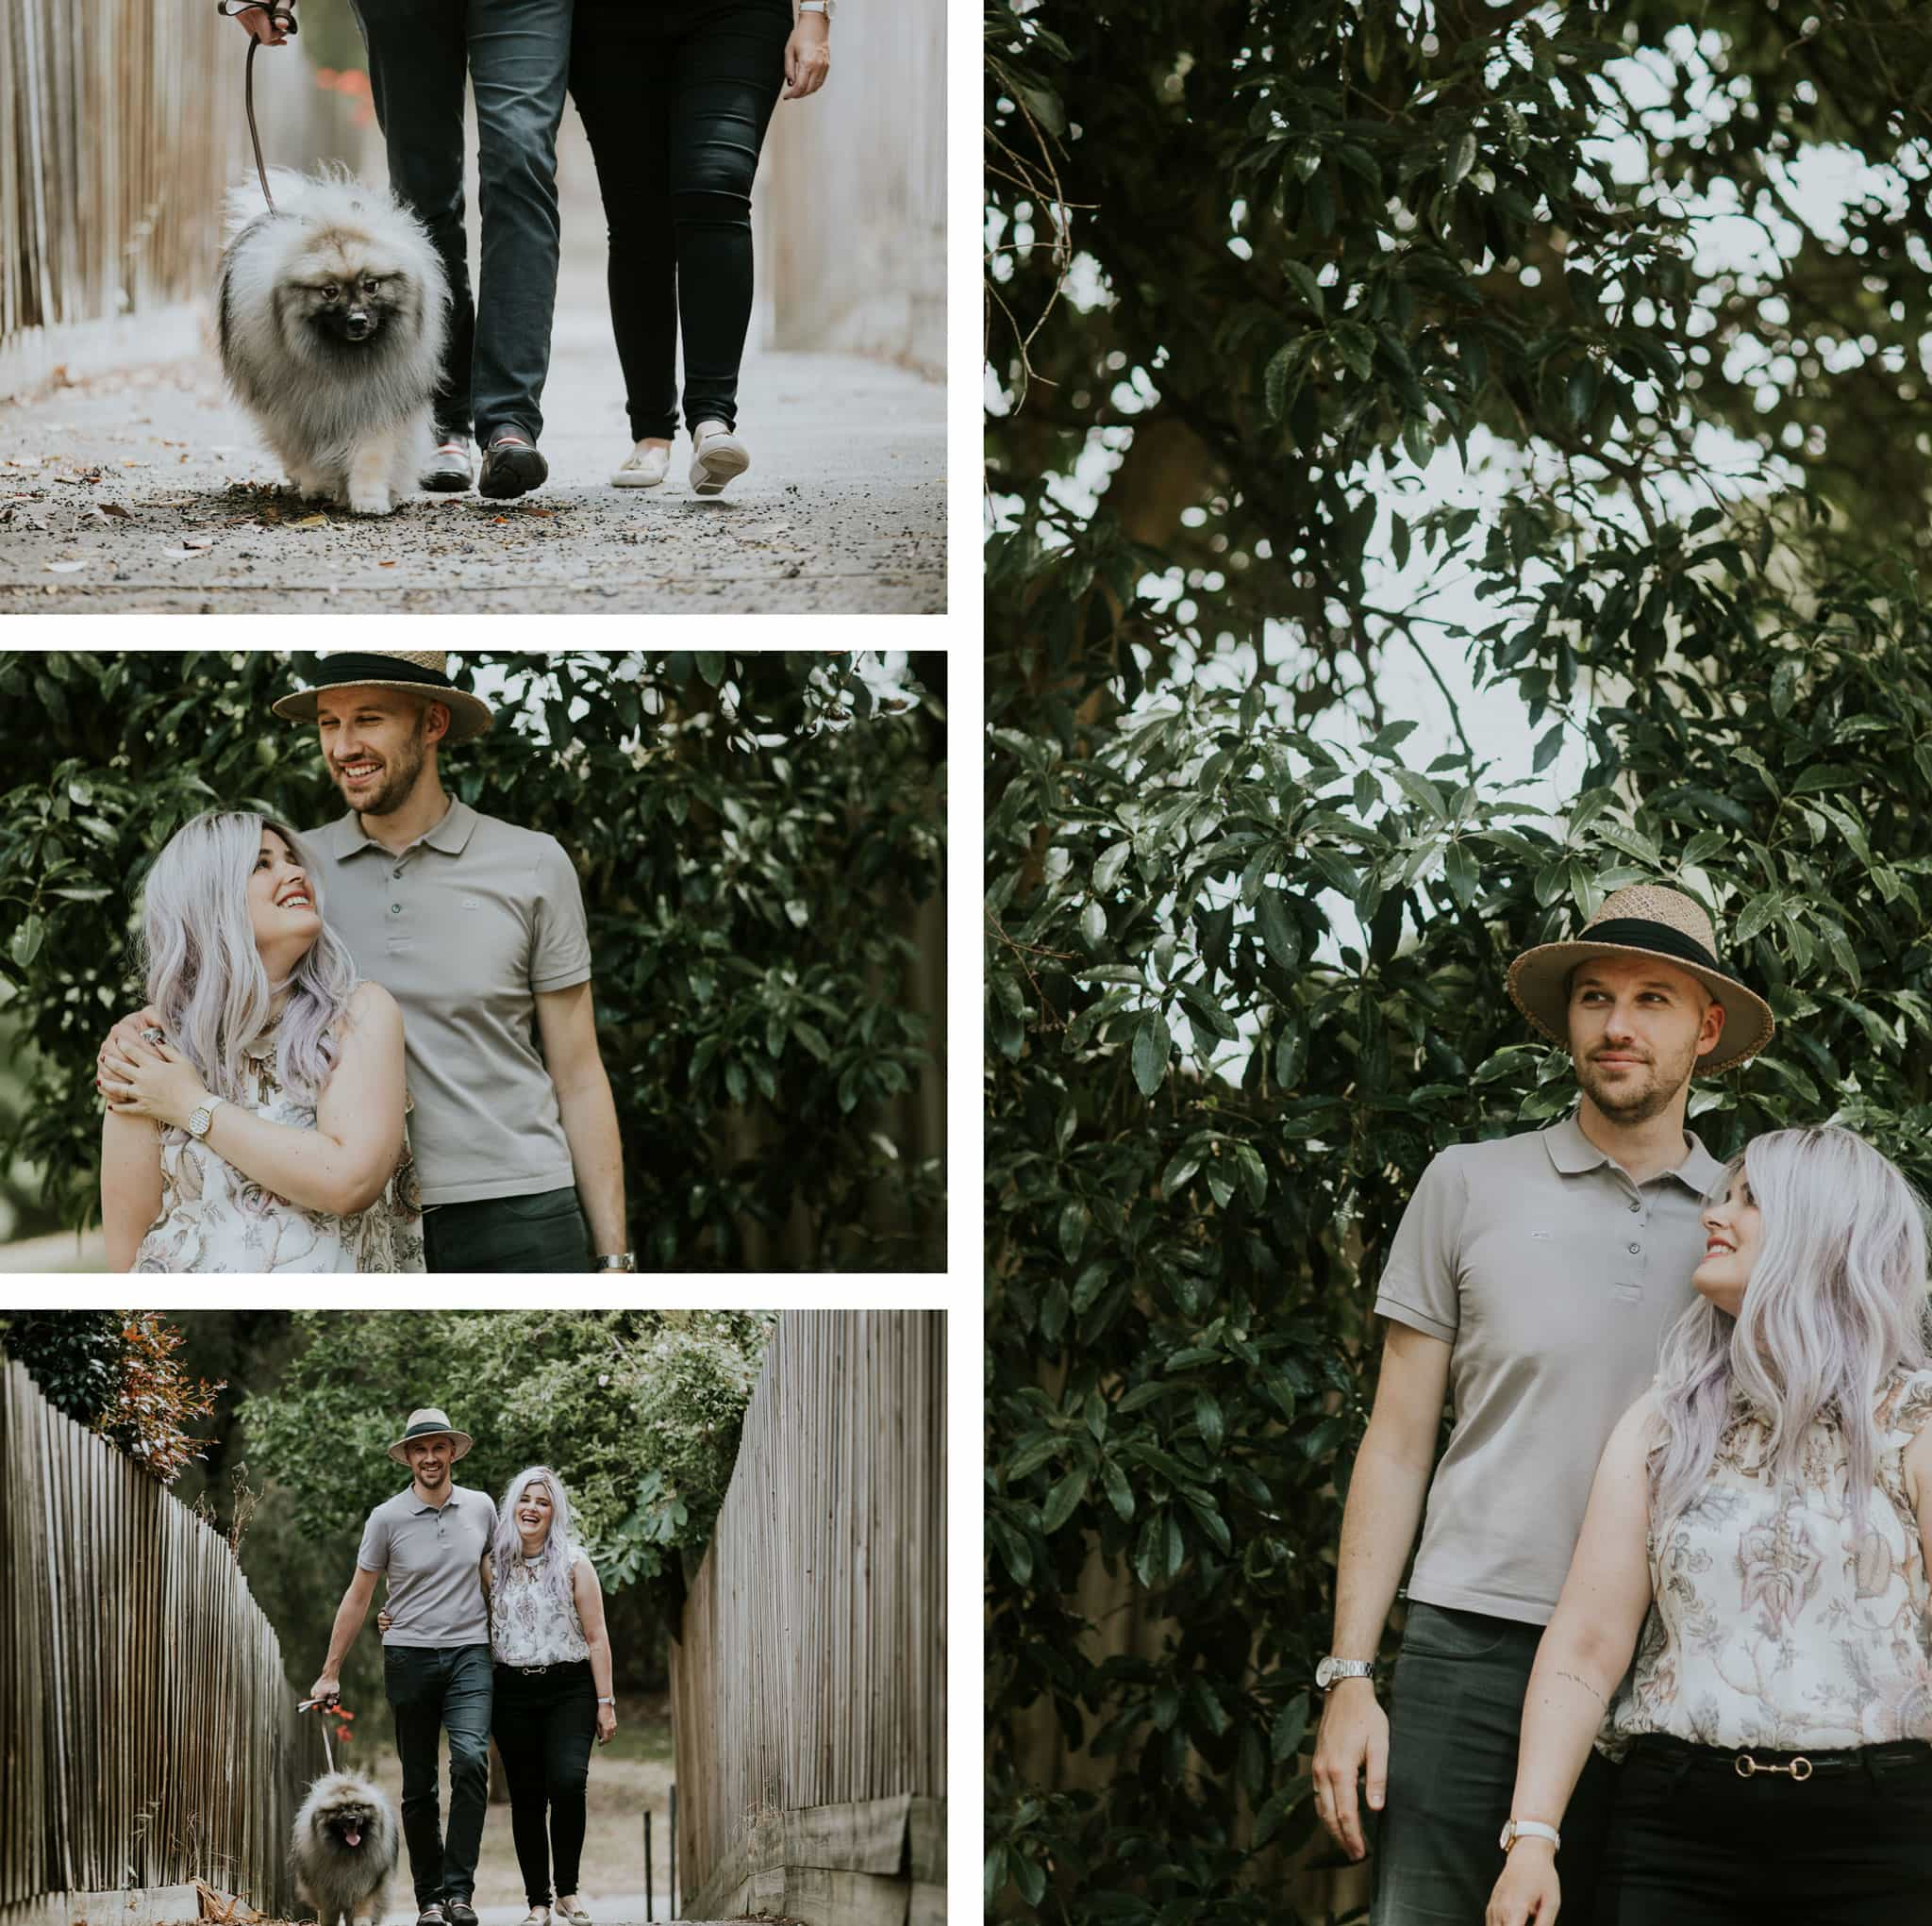 dog photos in local park - couples photoshoot